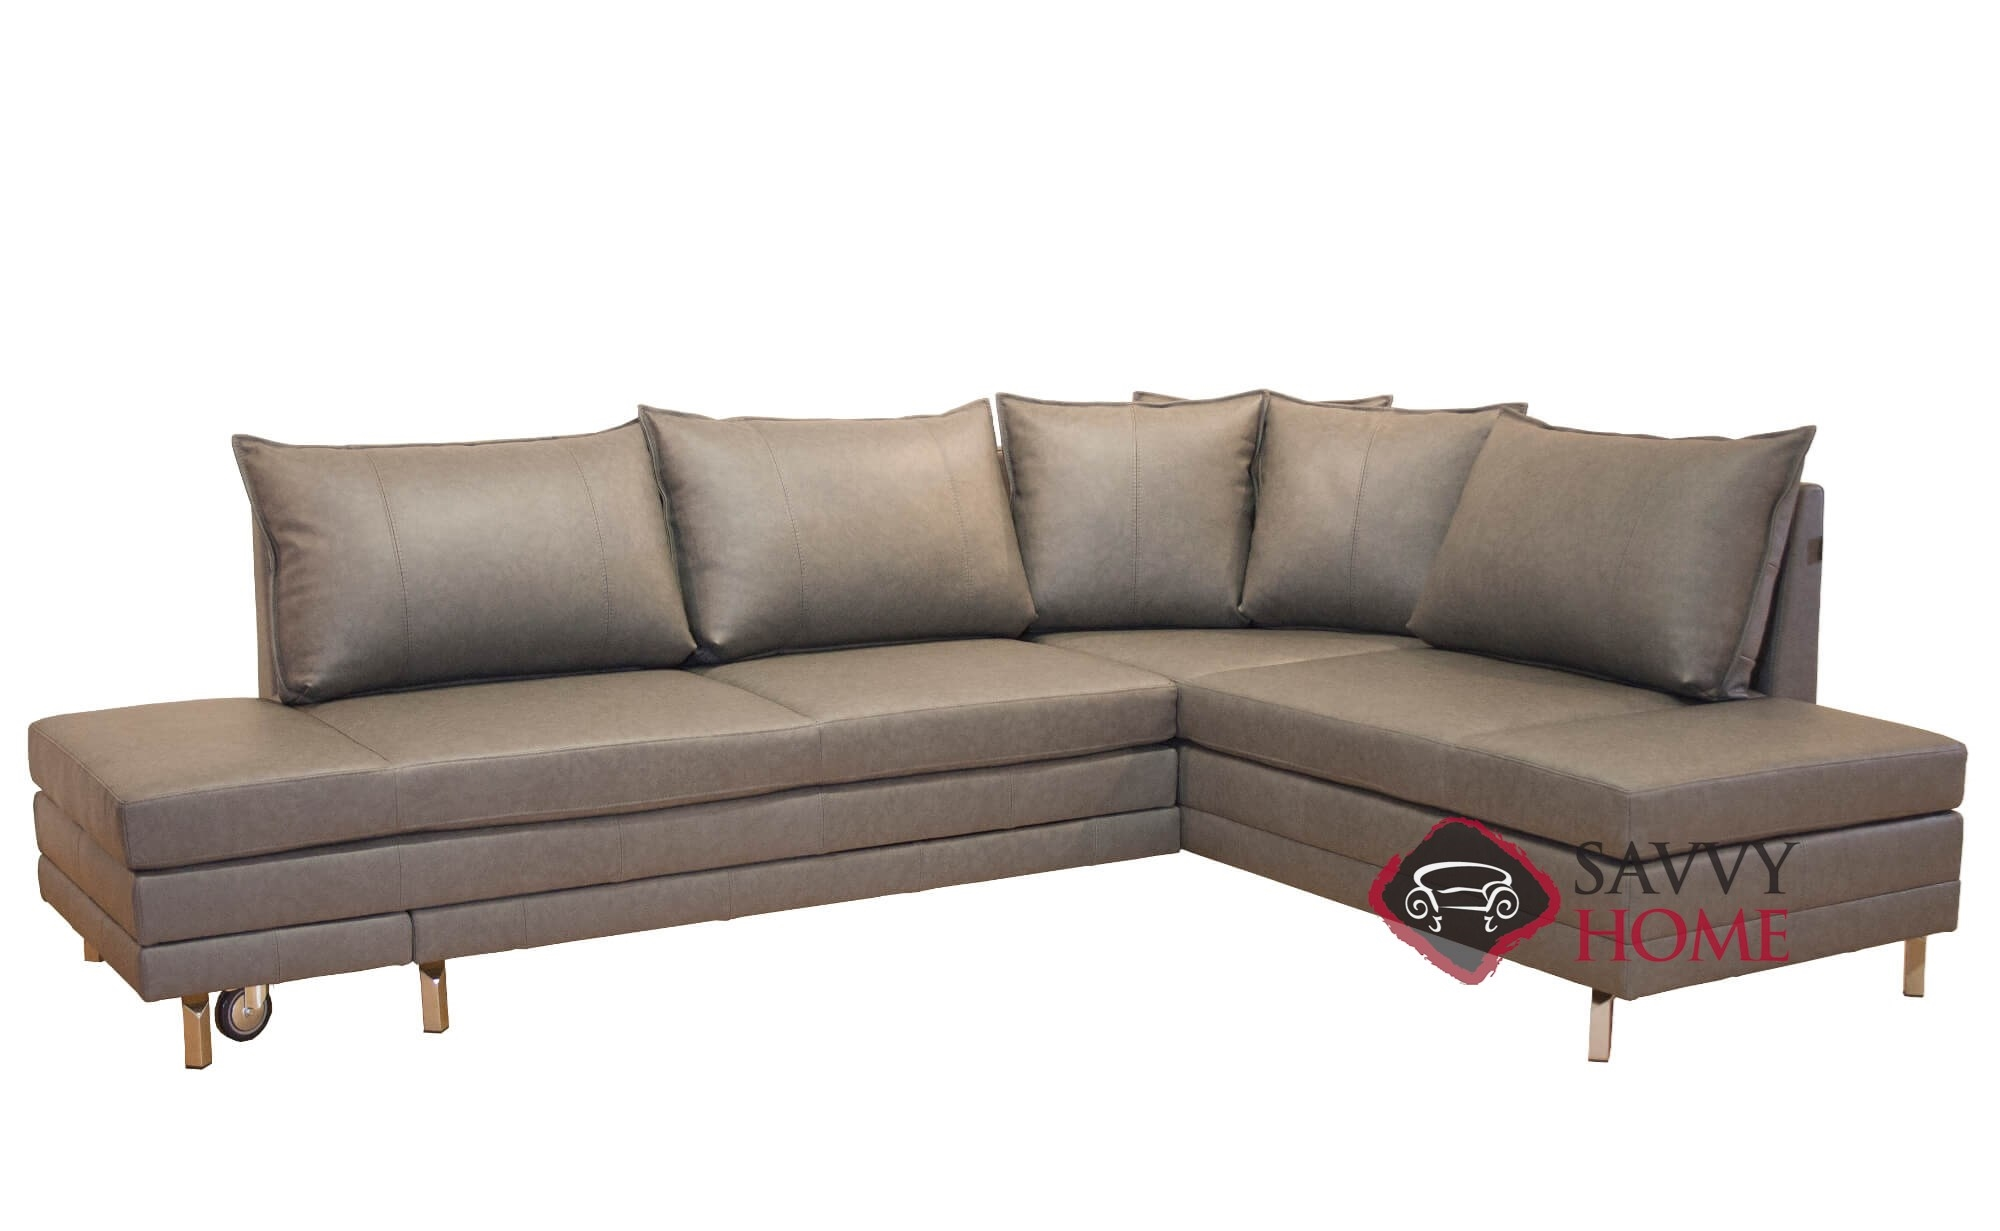 Curry Chaise Sectional Queen Leather Sofa Bed by Luonto